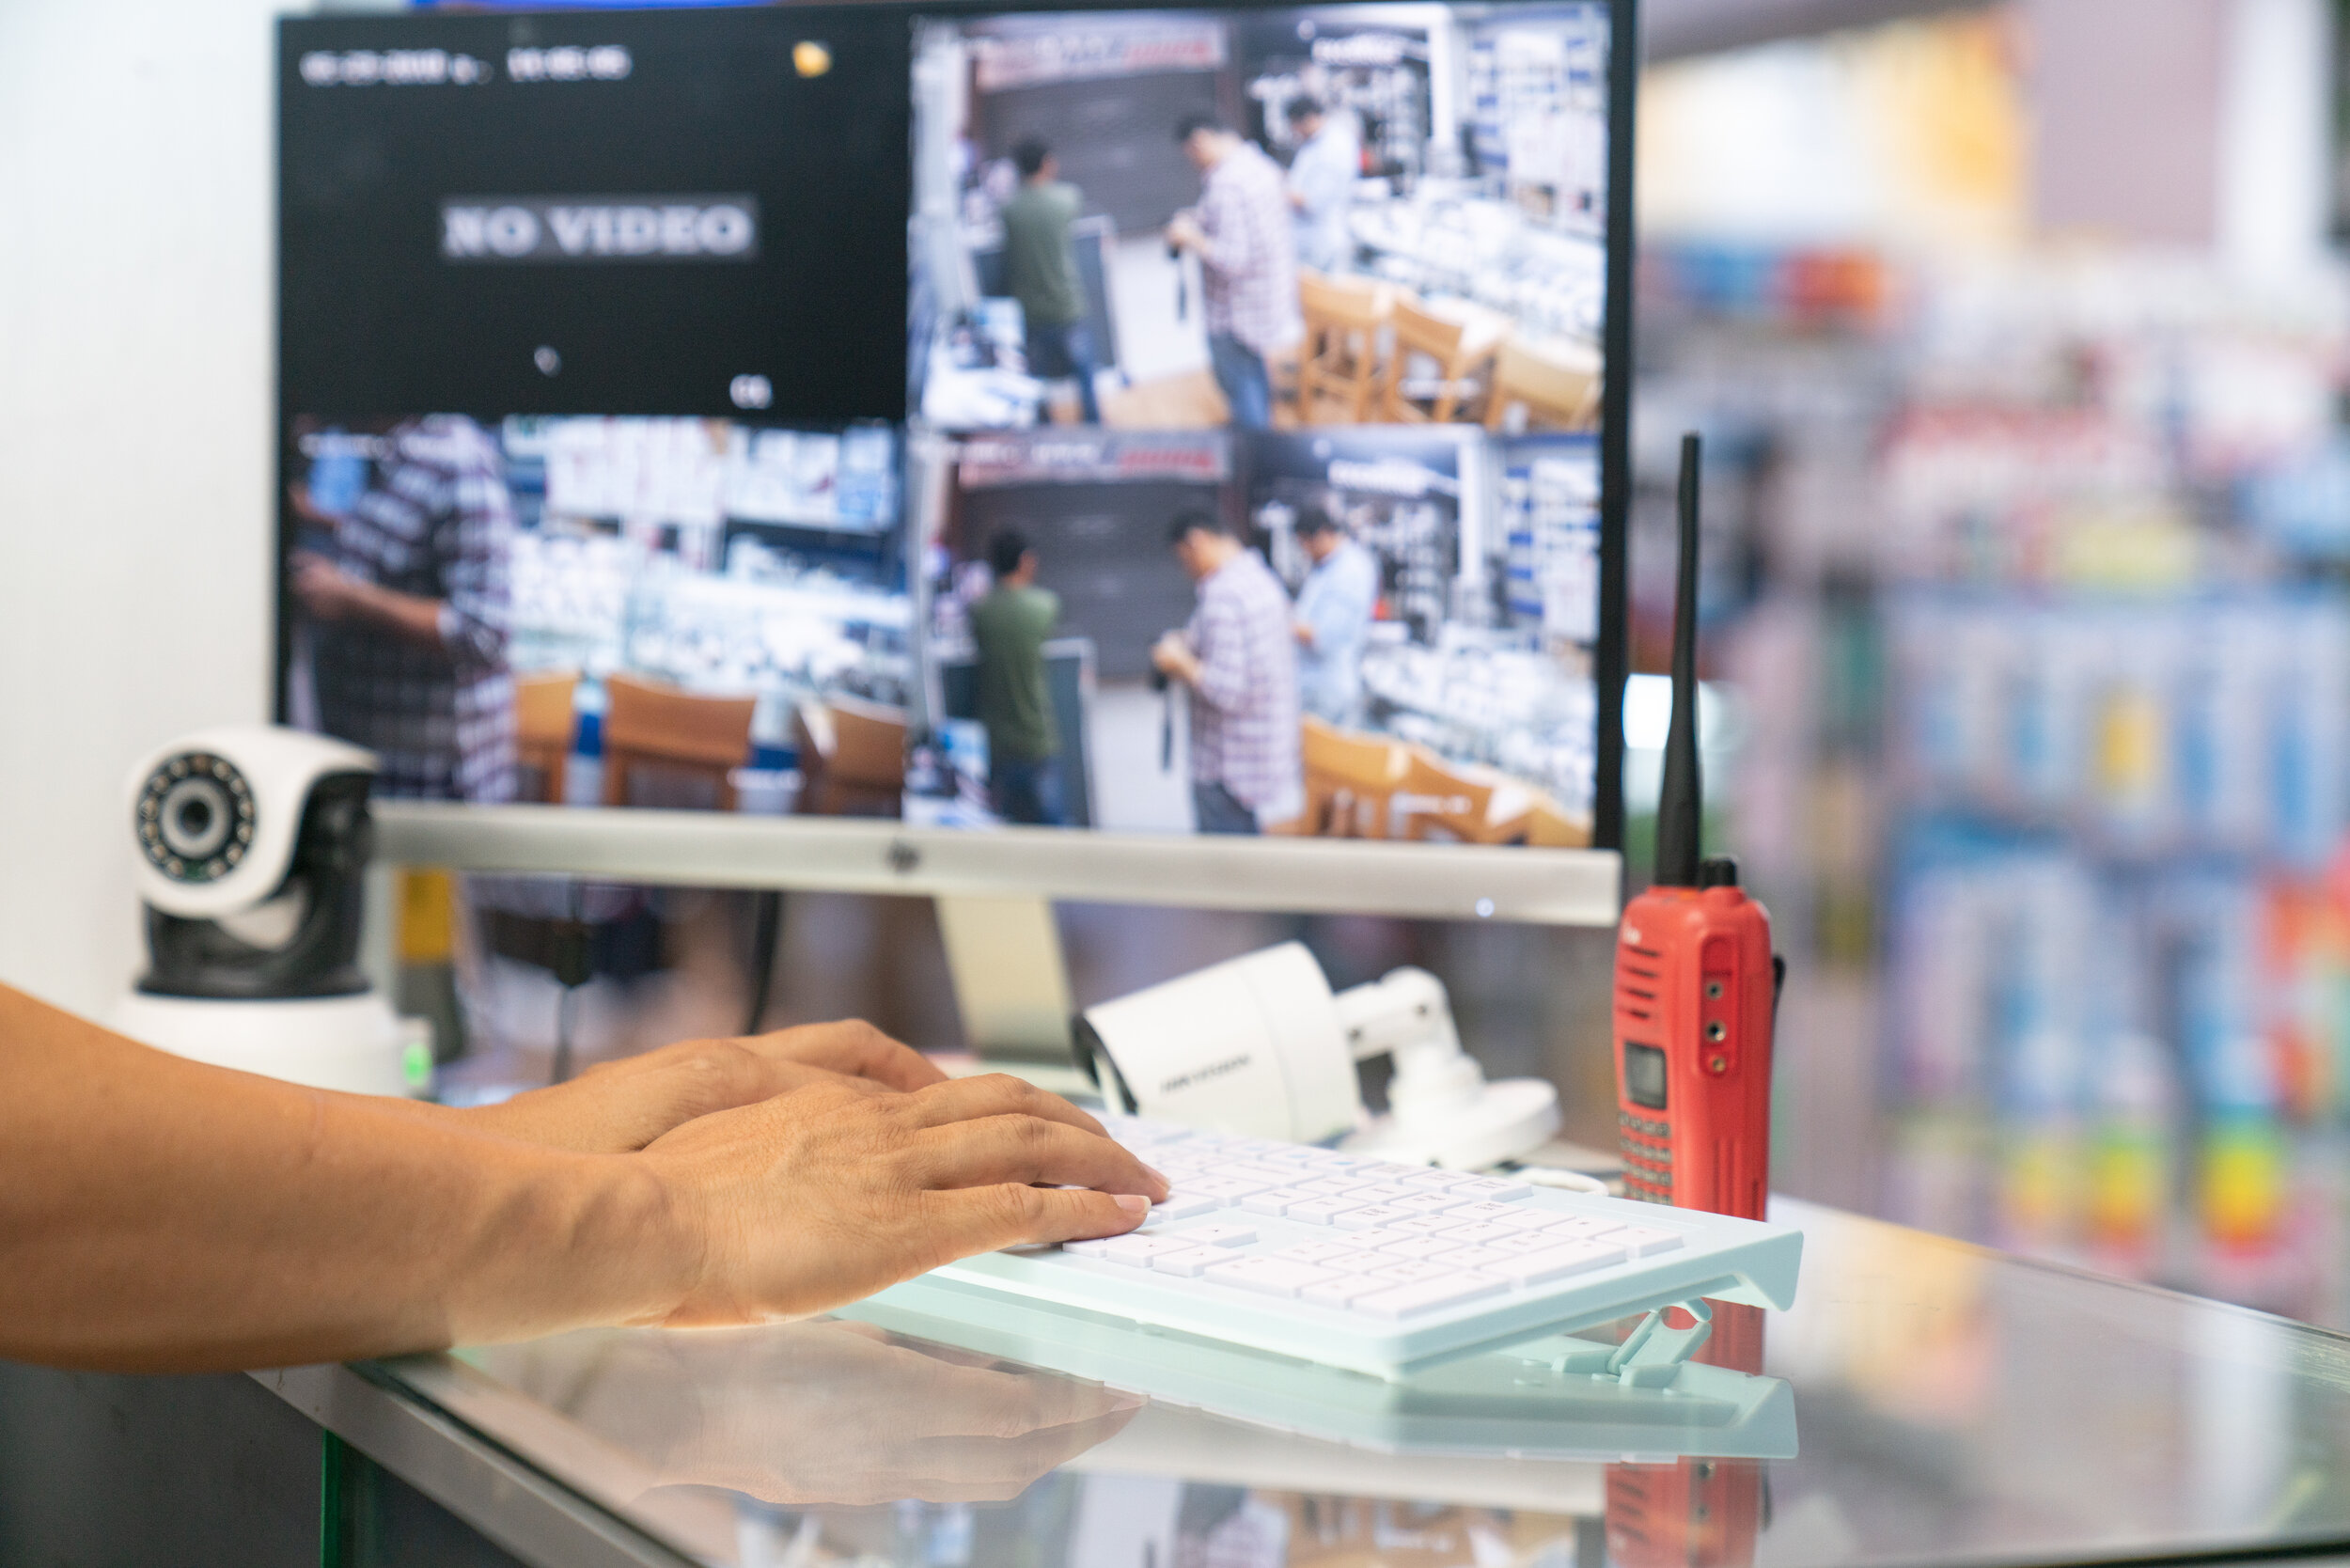 Take your retail store security seriously with real-time security and marketing data.